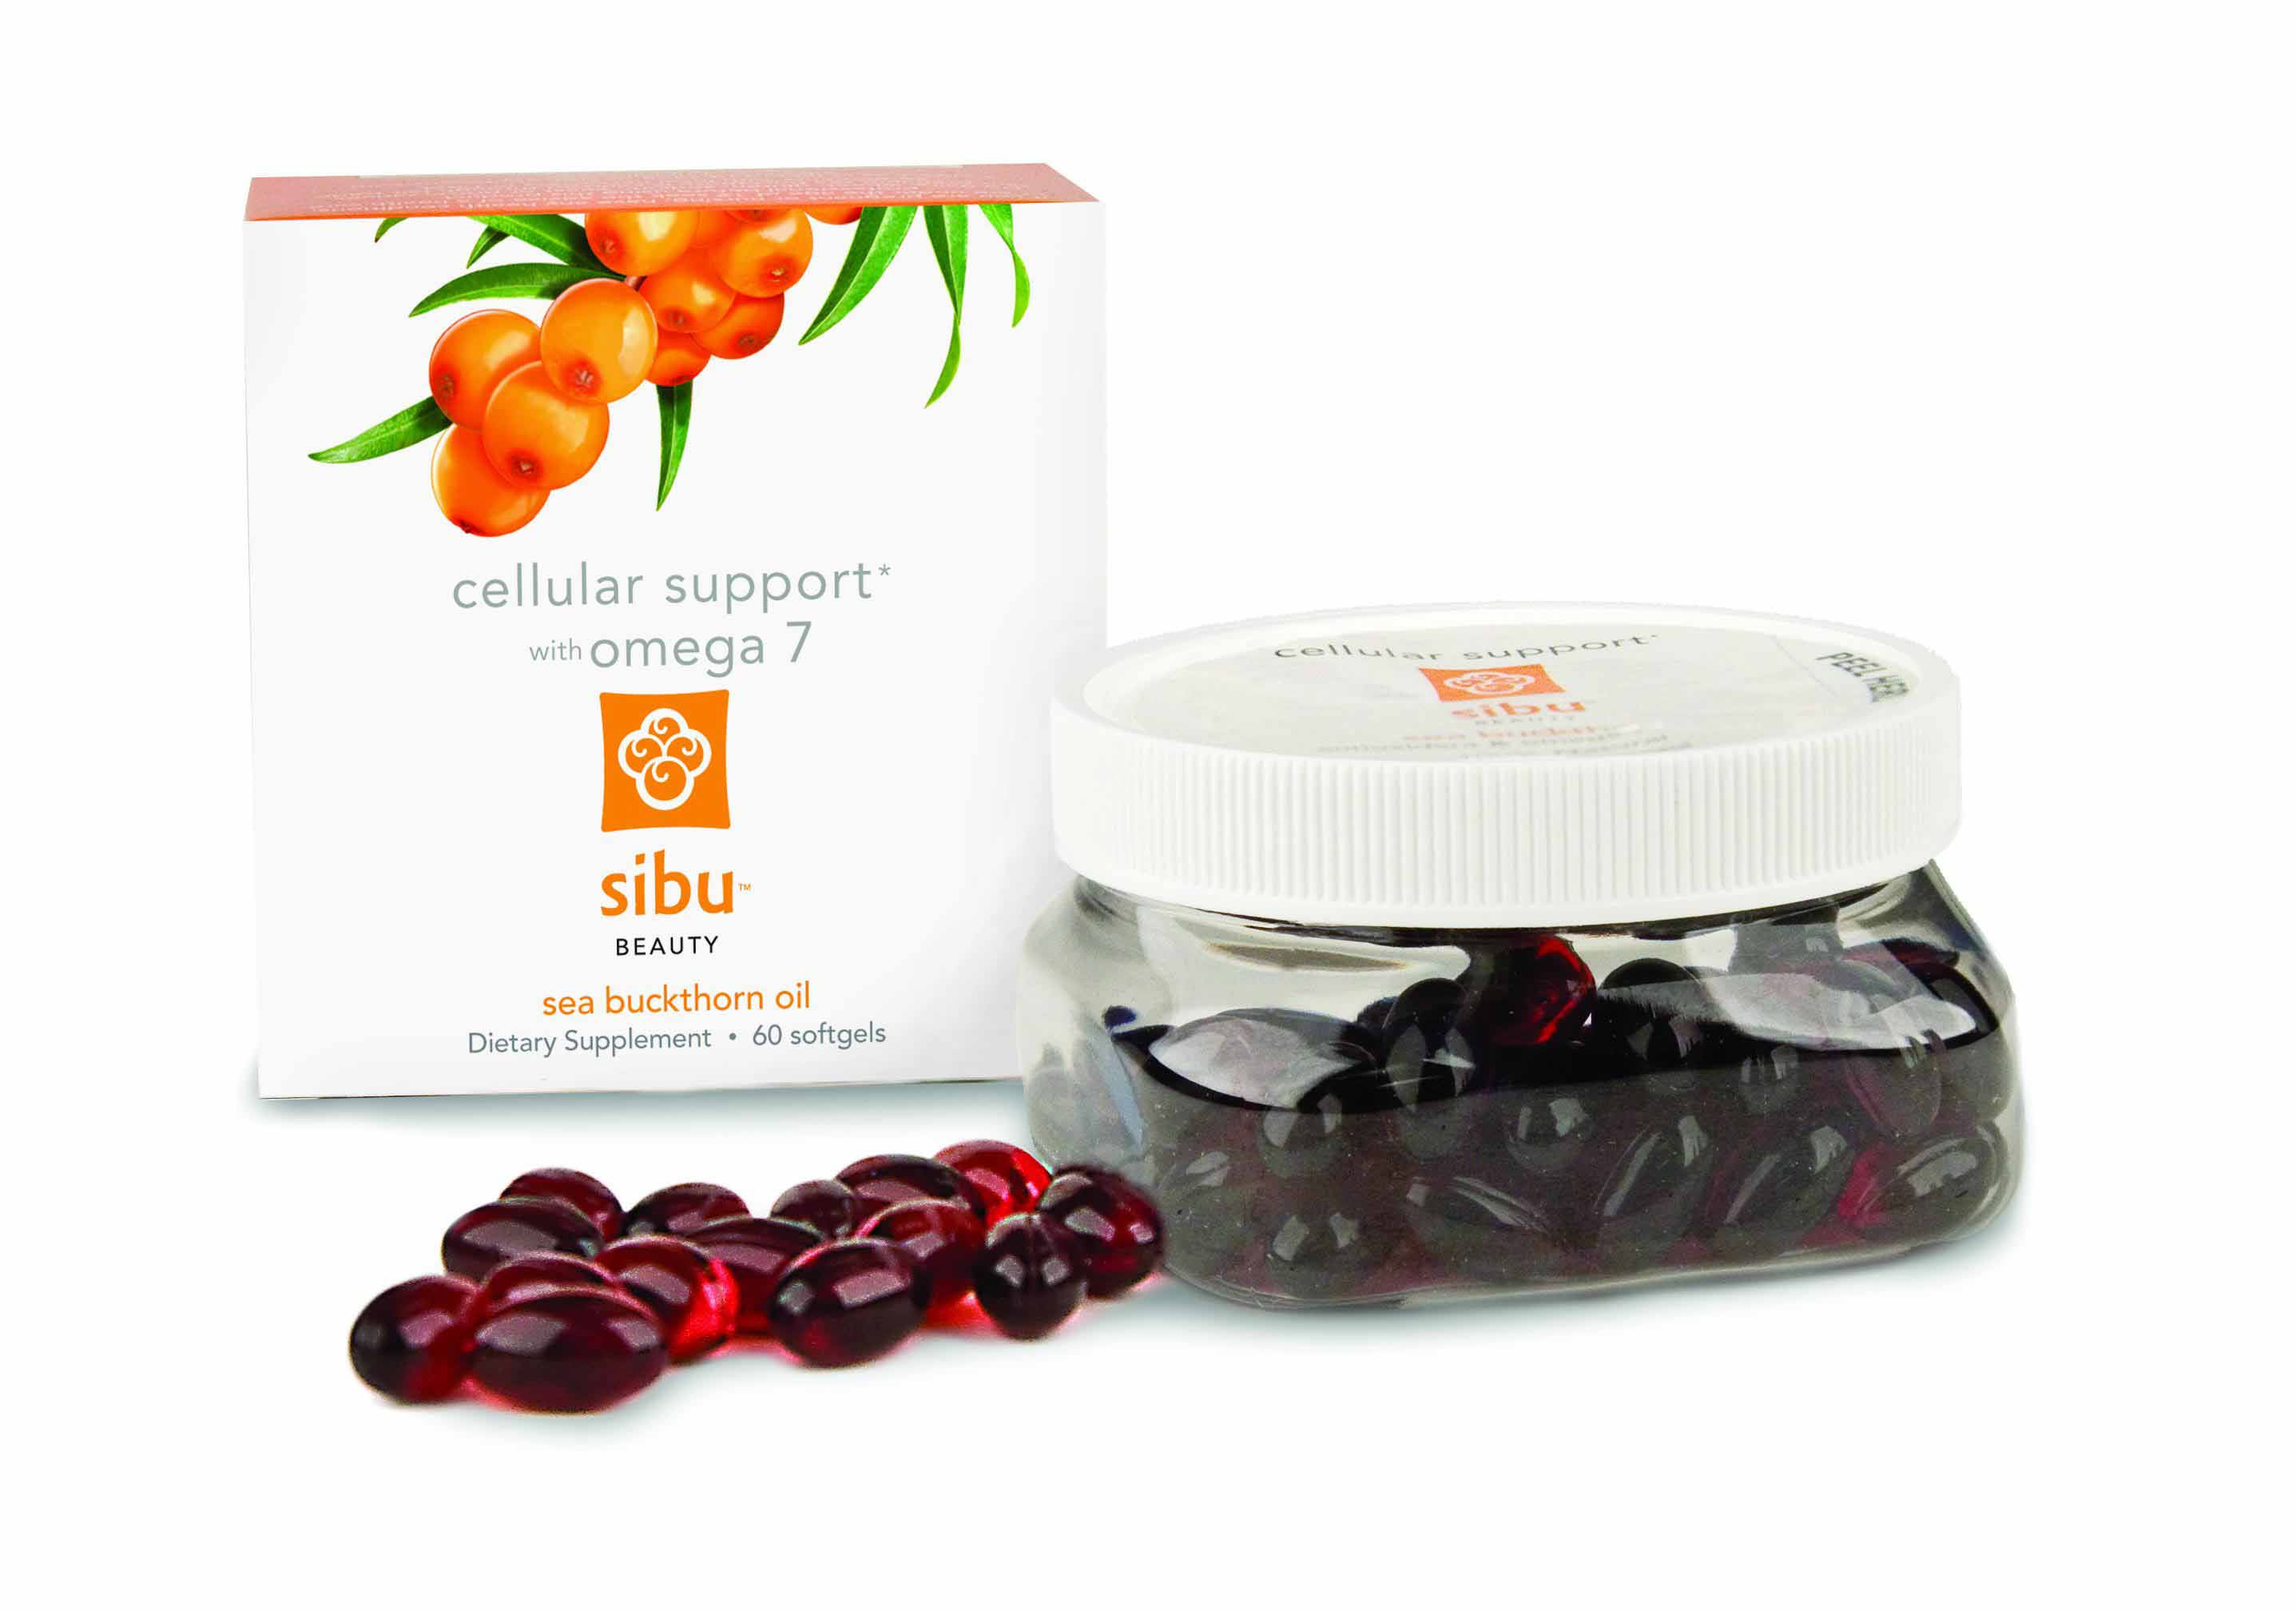 Sibu Beauty Cellular Support Omega 7 Complex Sea Buckthorn Berries Supplement